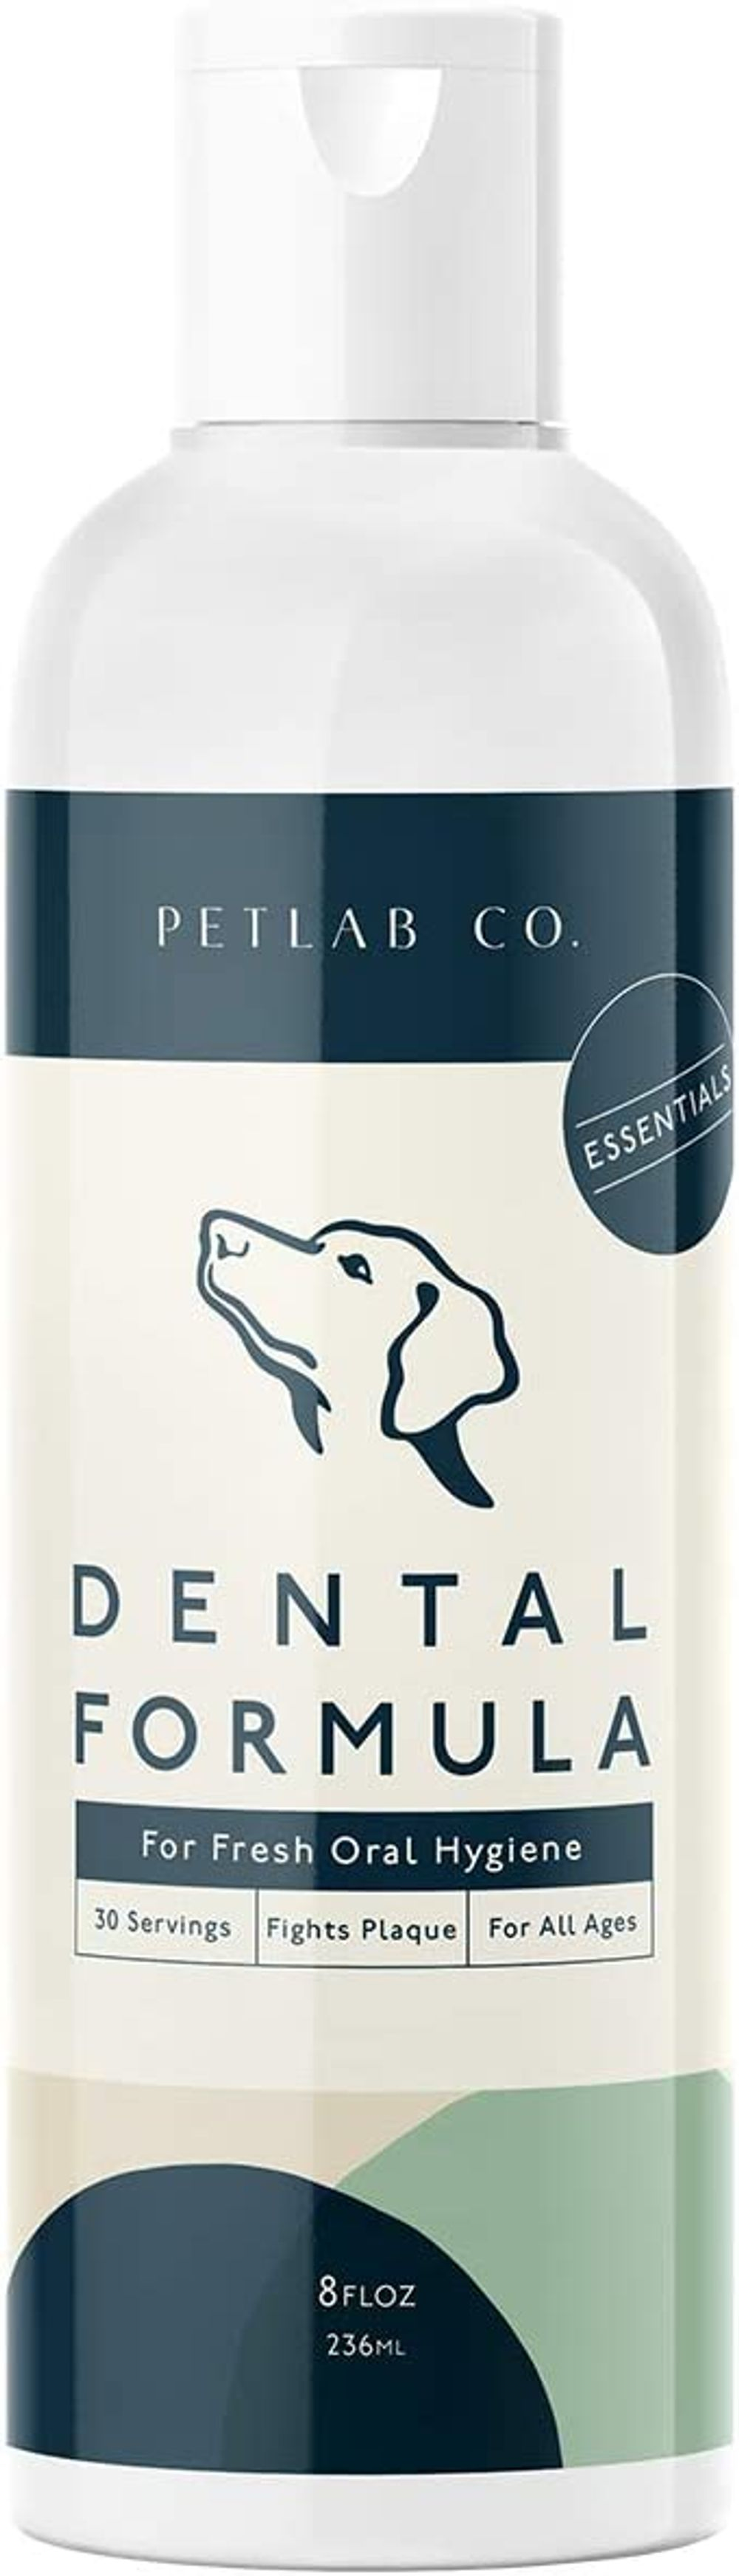 Petlab Co. Dental Formula Water Additive for Dogs | Targets Dog Plaque and Tartar Build-UpforFresher Breath and Healthier Gums | Fresh Drinking Oral Hygiene Care (No Brush Required)